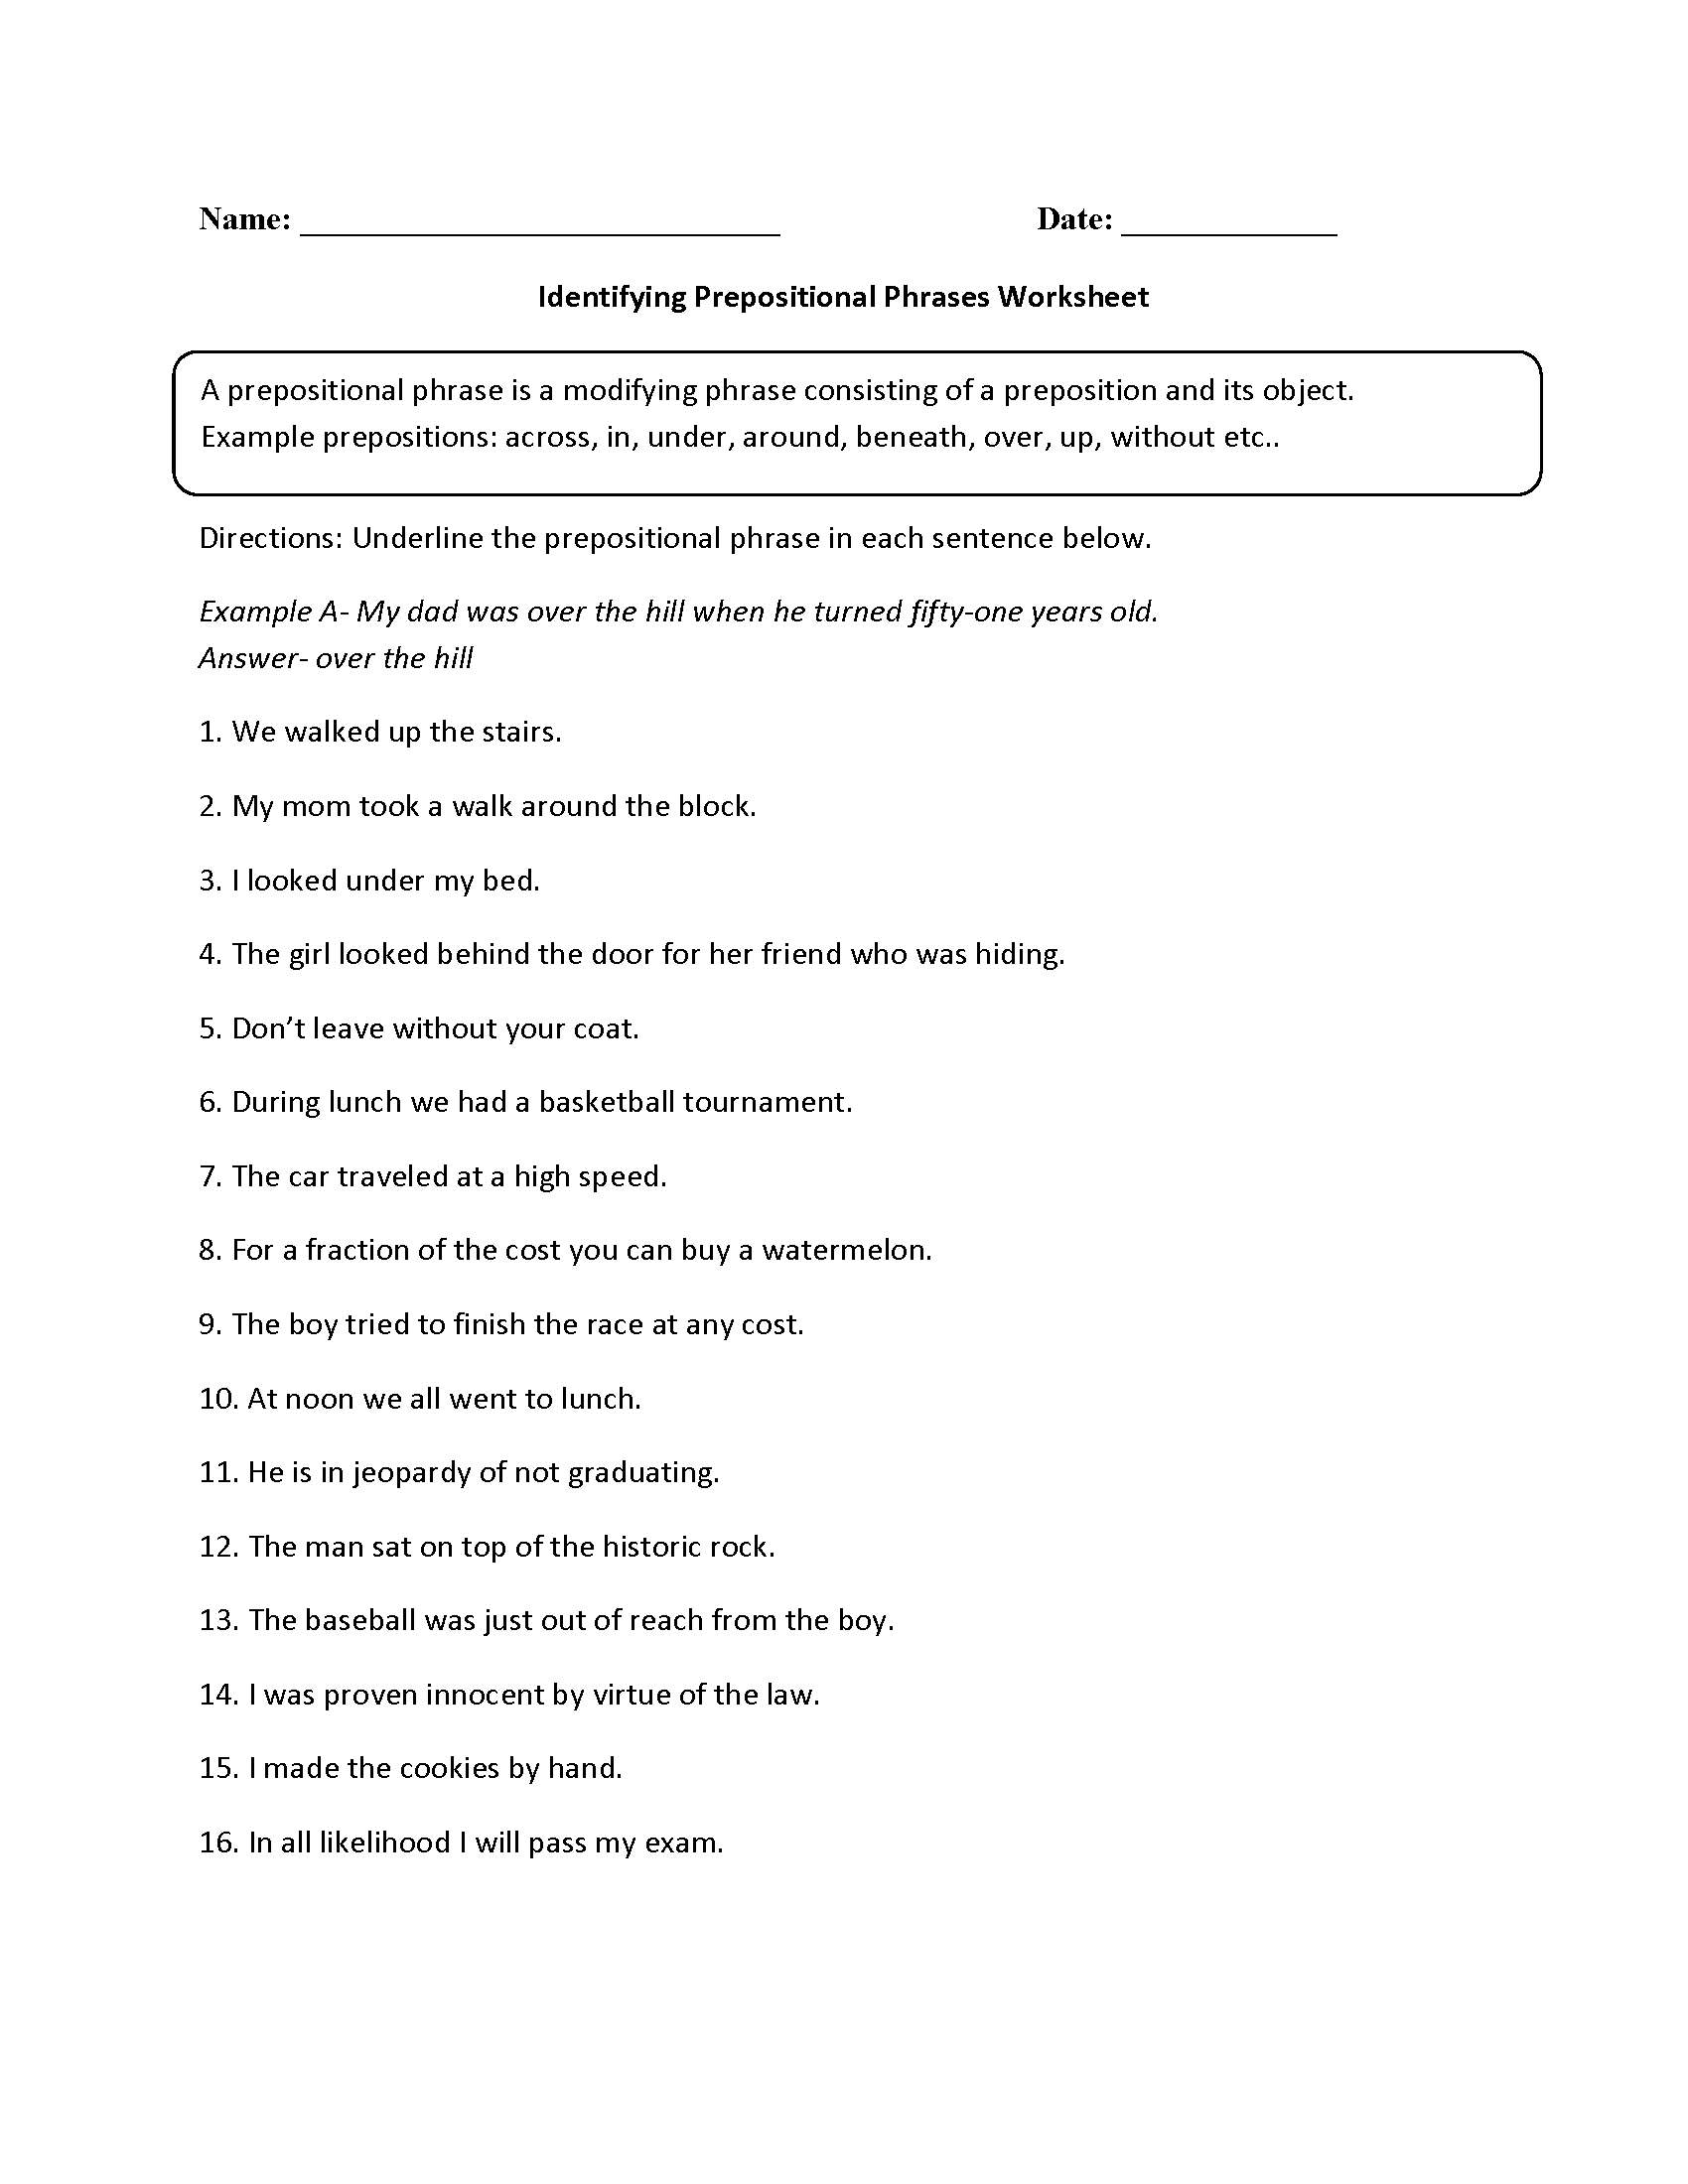 Prepositional Phrases Worksheets | Identifying Prepositional ...